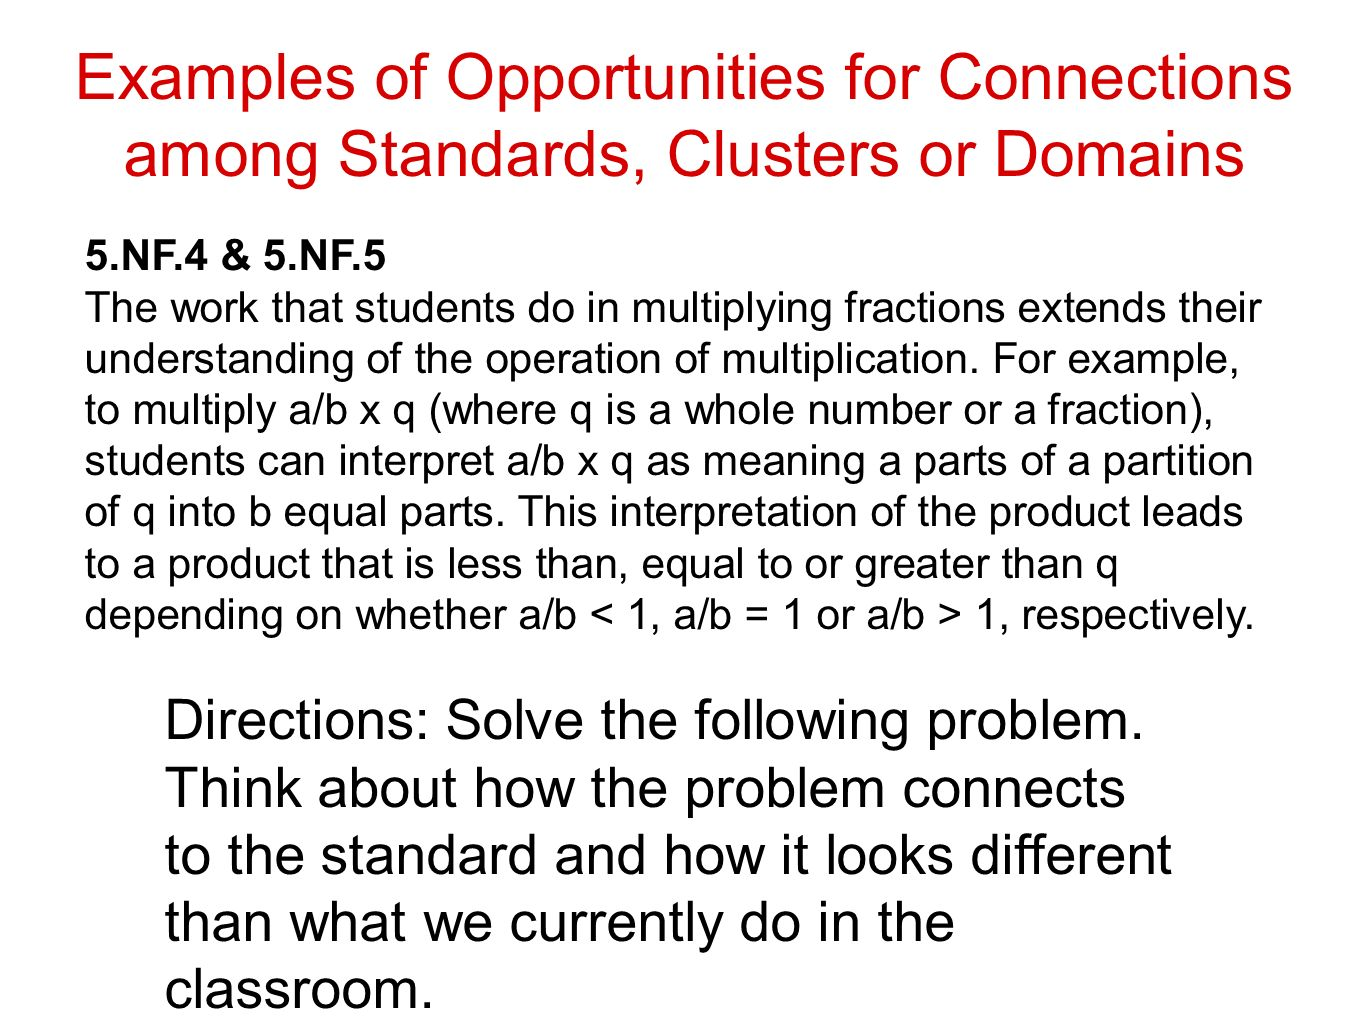 Examples of Opportunities for Connections among Standards, Clusters or Domains Directions: Solve the following problem.